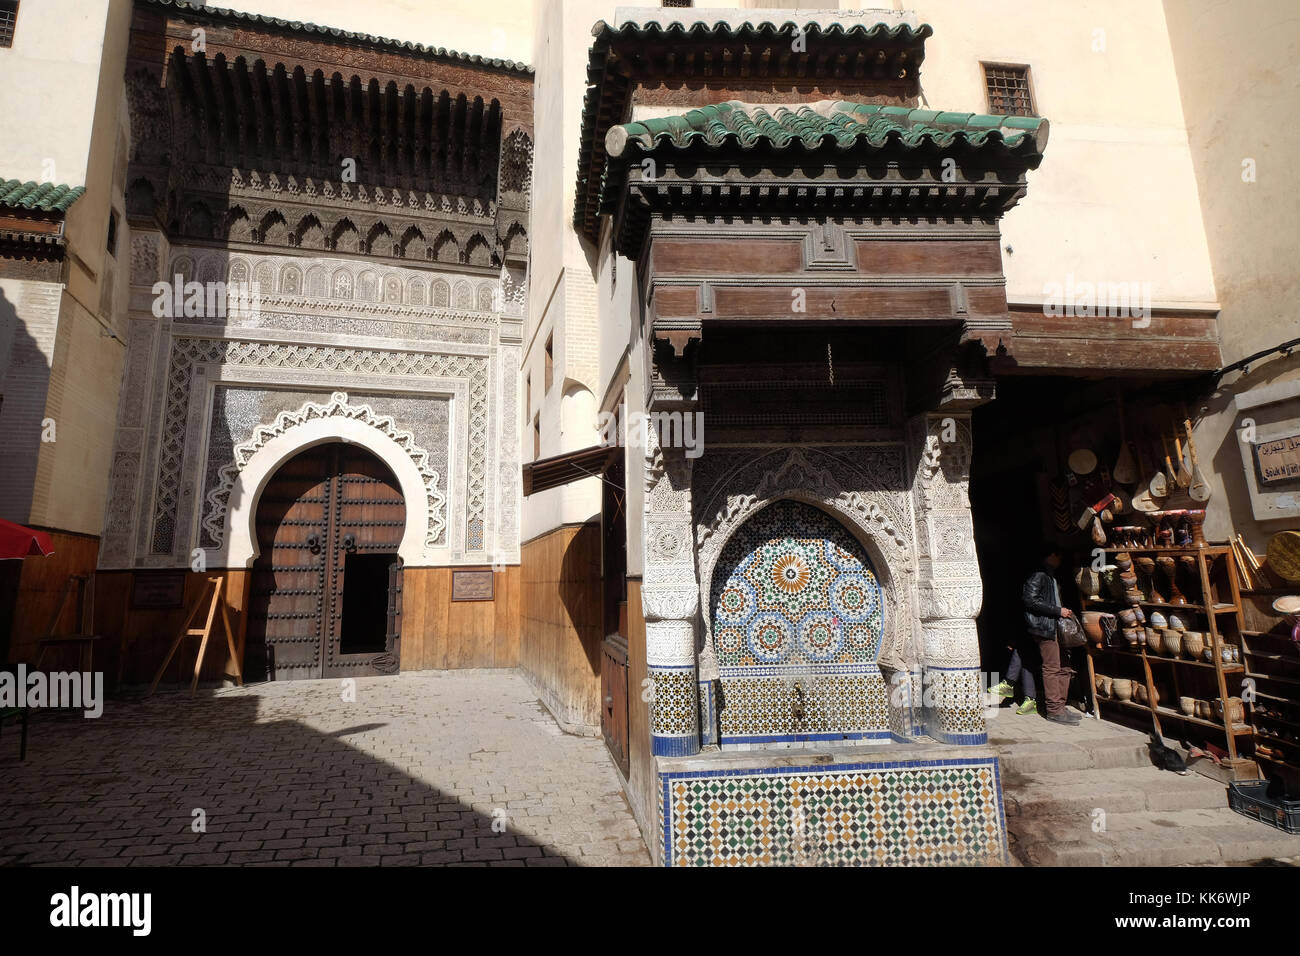 Nejjarine Museum (Carpenters' Square) of wood art and crafts Fez,Morocco - Stock Image